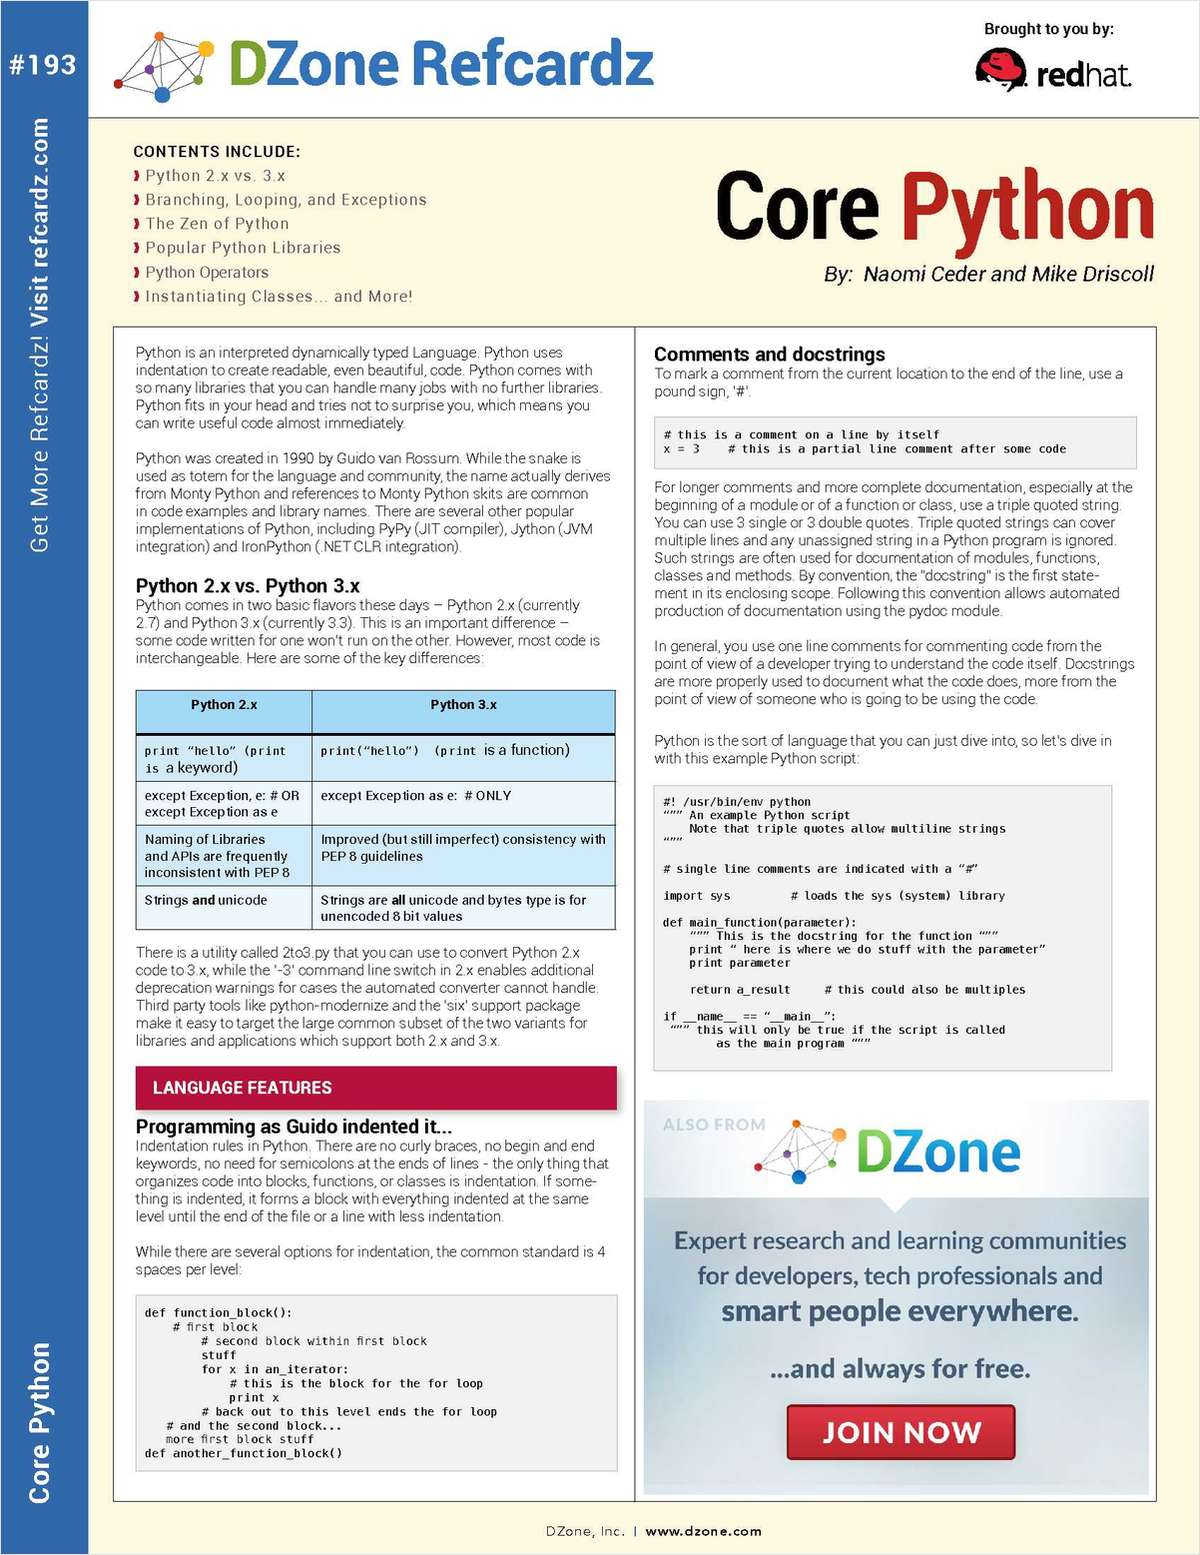 The Essential Core Python Cheat Sheet